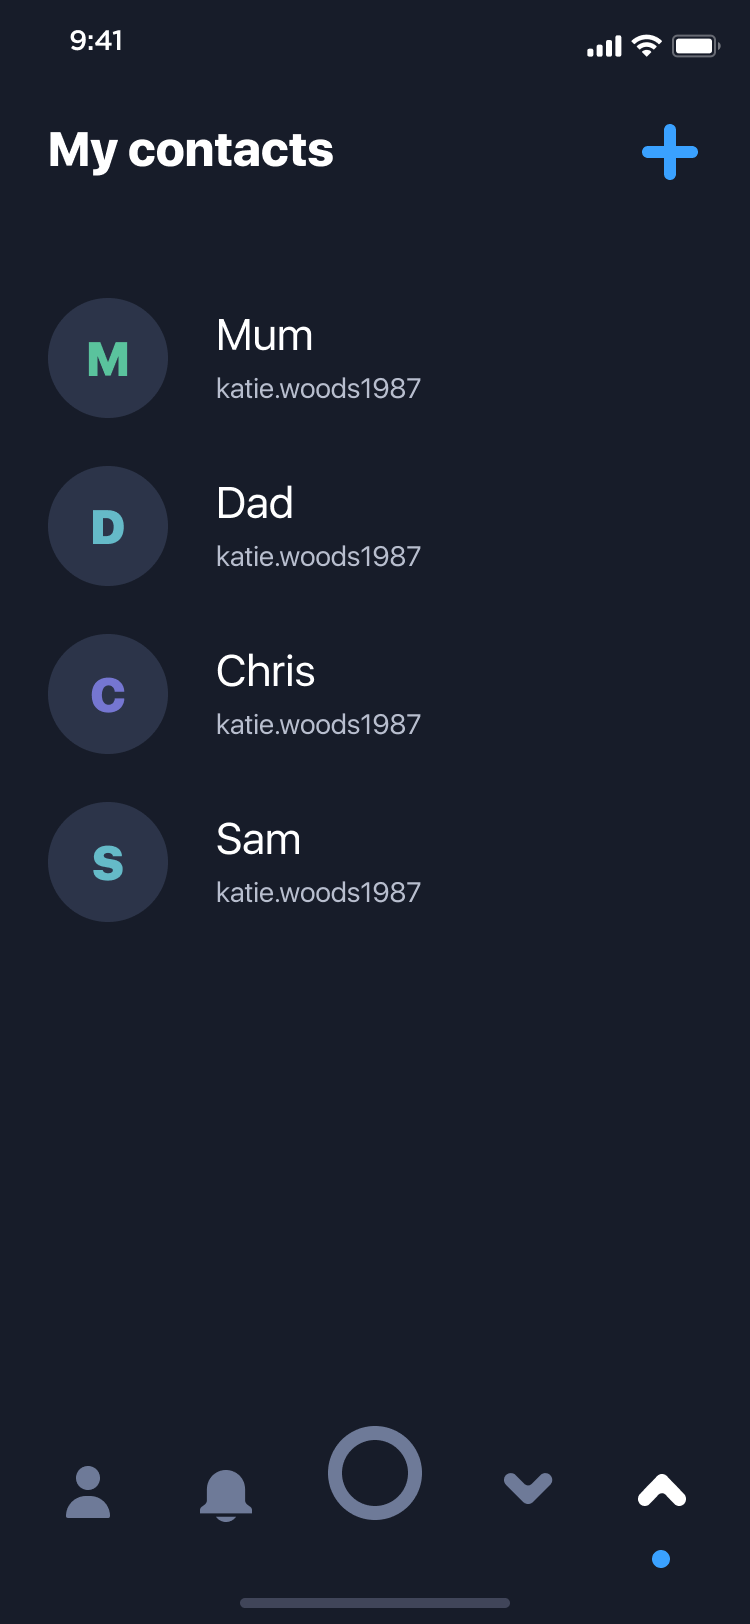 App screen showing my OK contact list